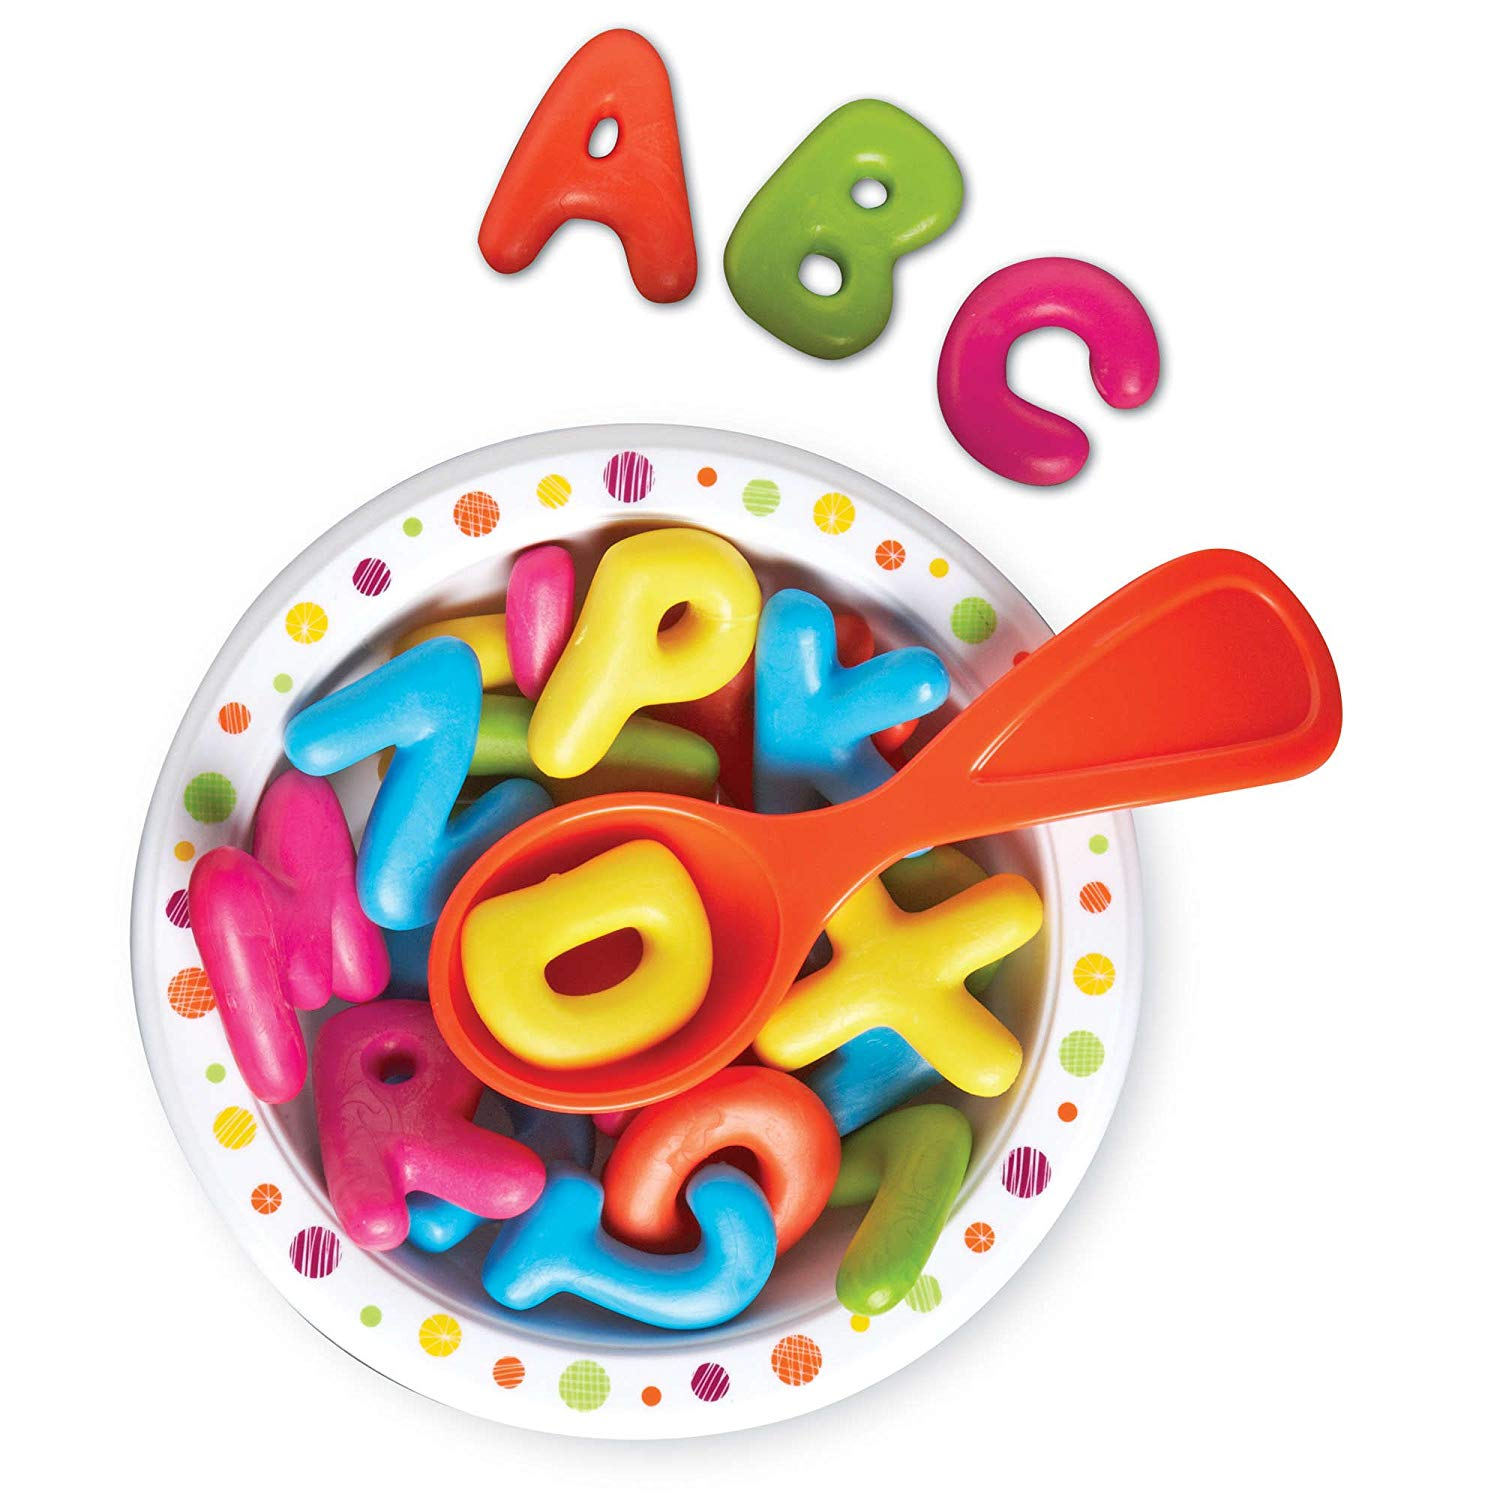 Cereal clipart alphabet soup. Learning resources fine motor